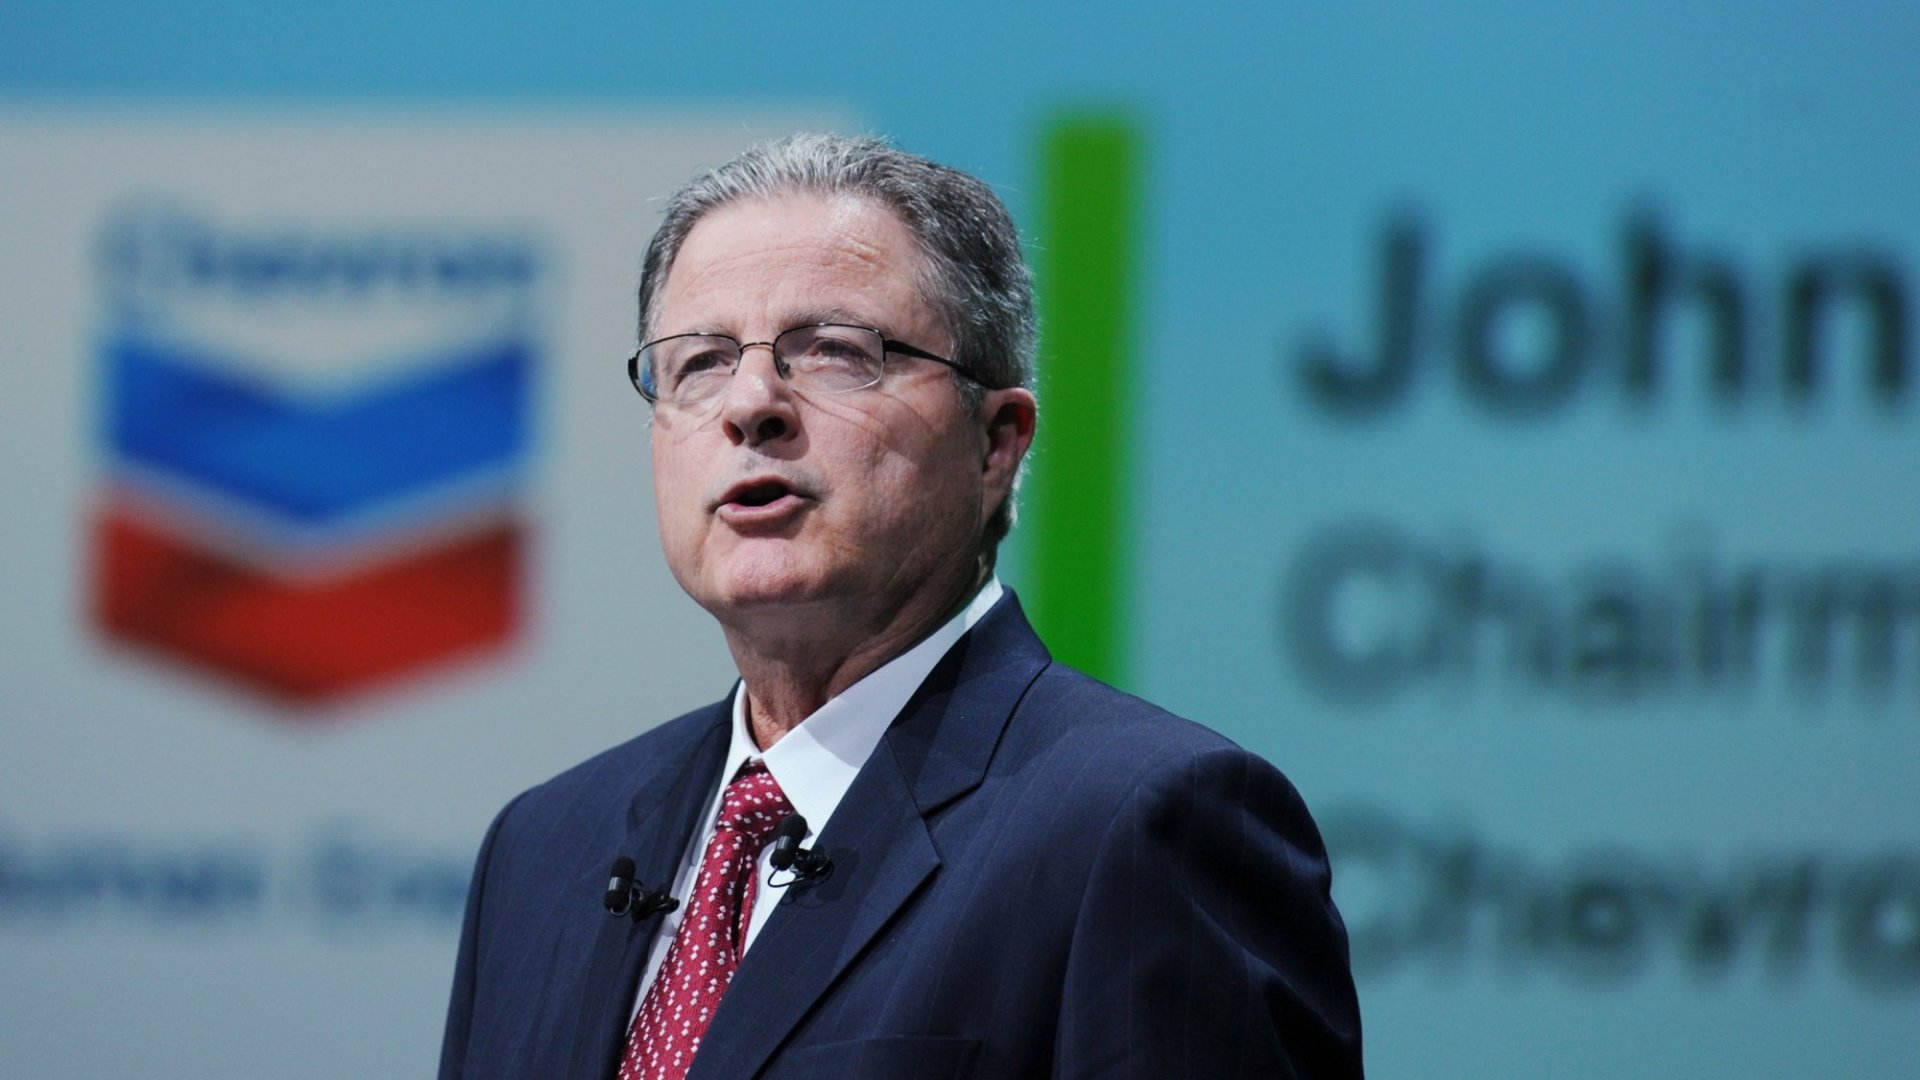 Chevron Chairman and CEO John Watson addresses a keynote speech during the World Gas Conference in Paris on June 2nd, 2015.